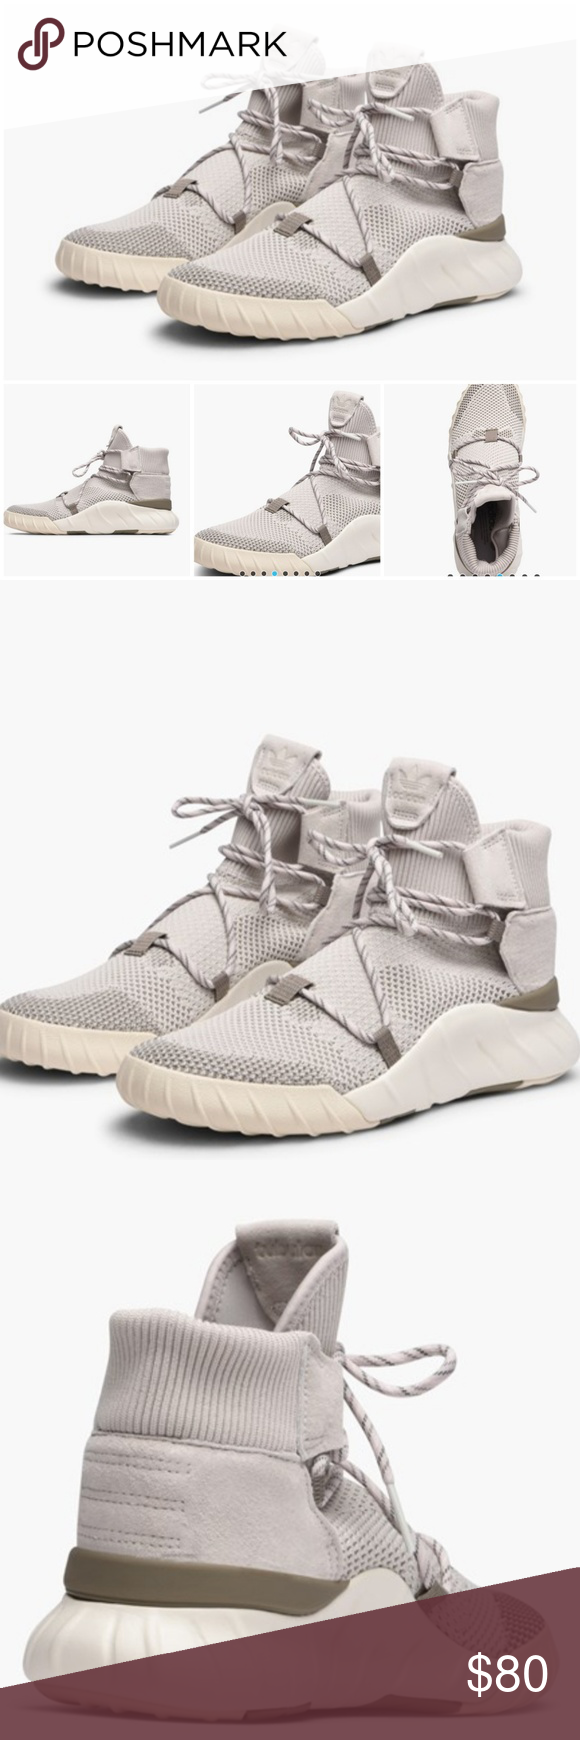 ADIDAS ORIGINALS Tubular x 2.0 W These shoes upper part of